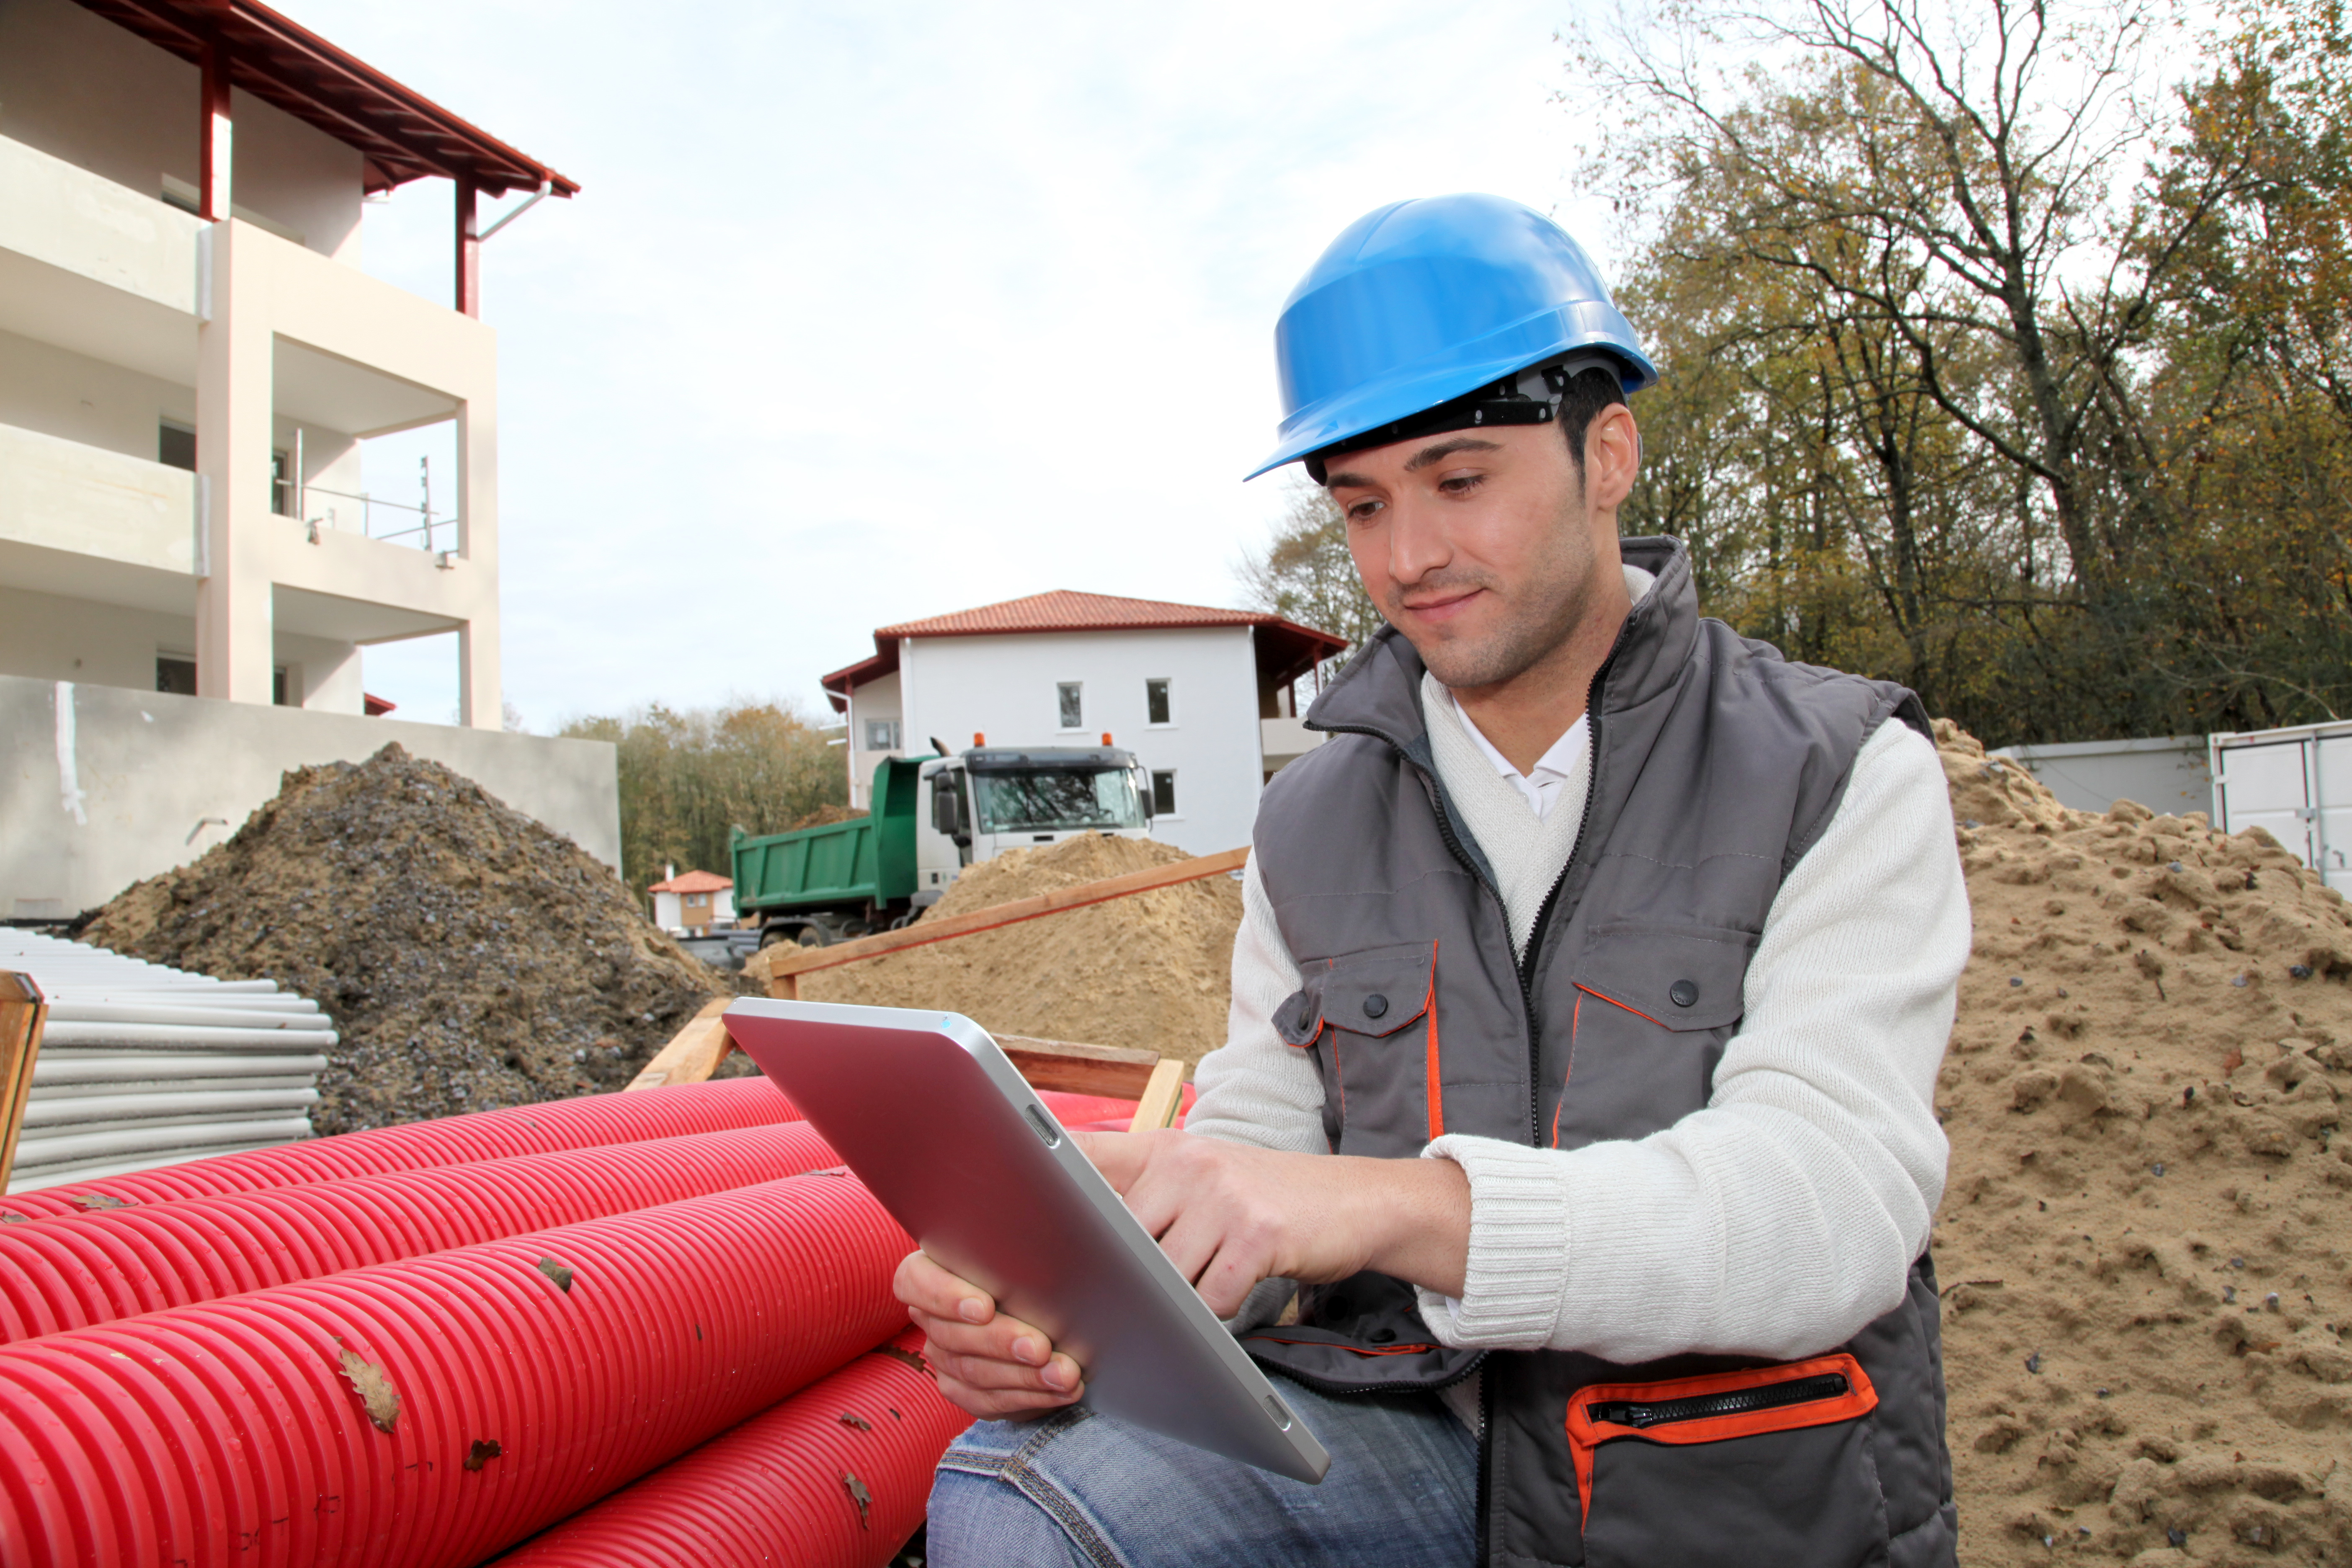 construction worker with mobile tablet and blue hard hat outside